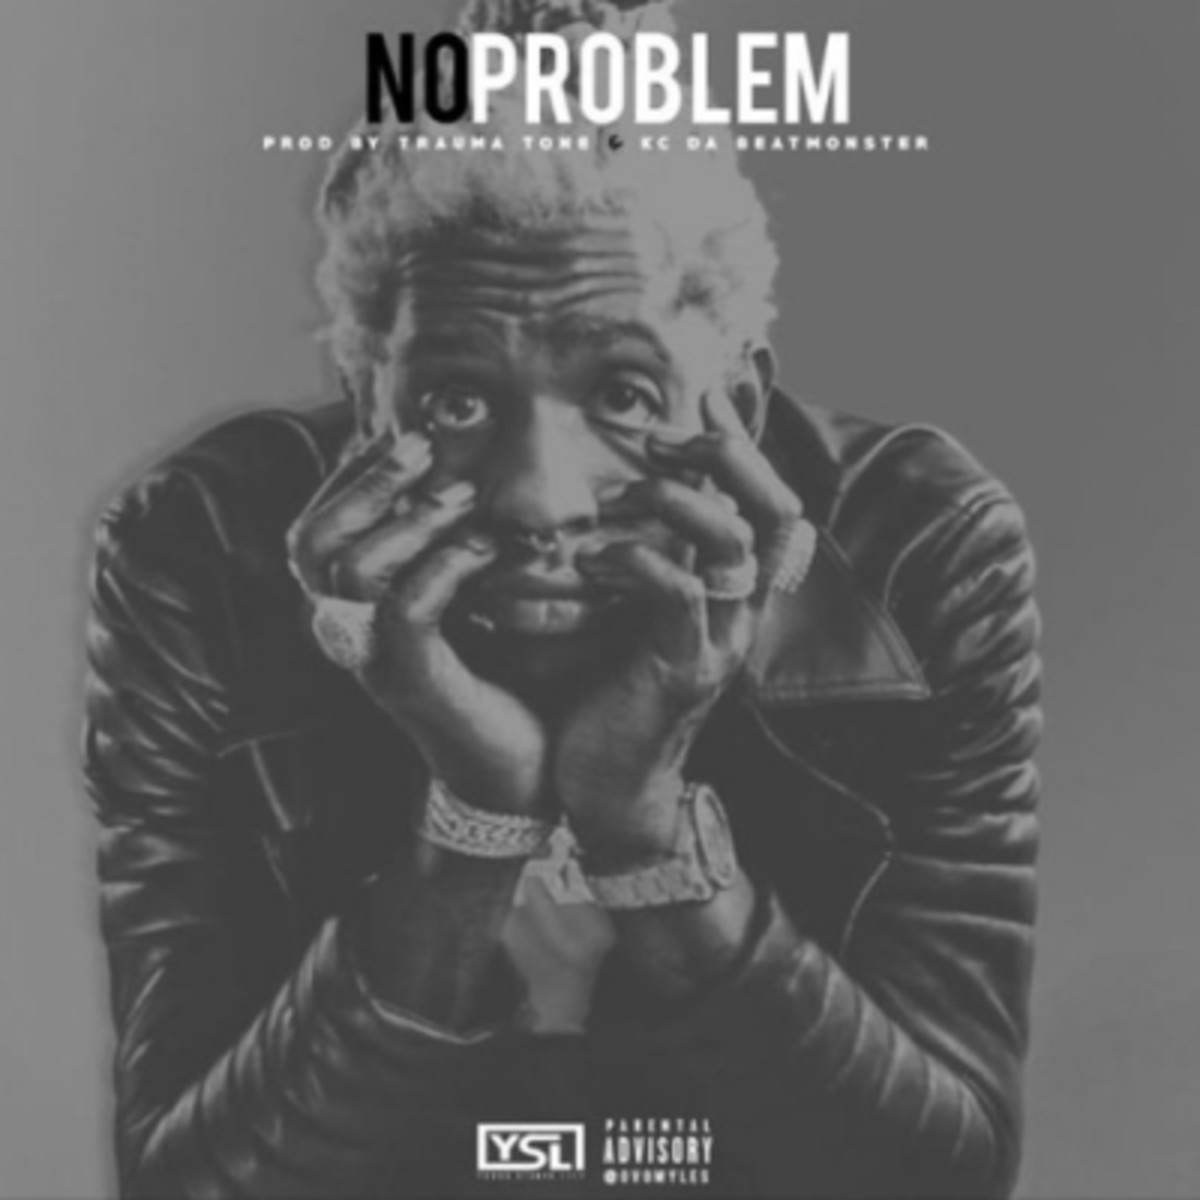 young-thug-no-problem.jpg